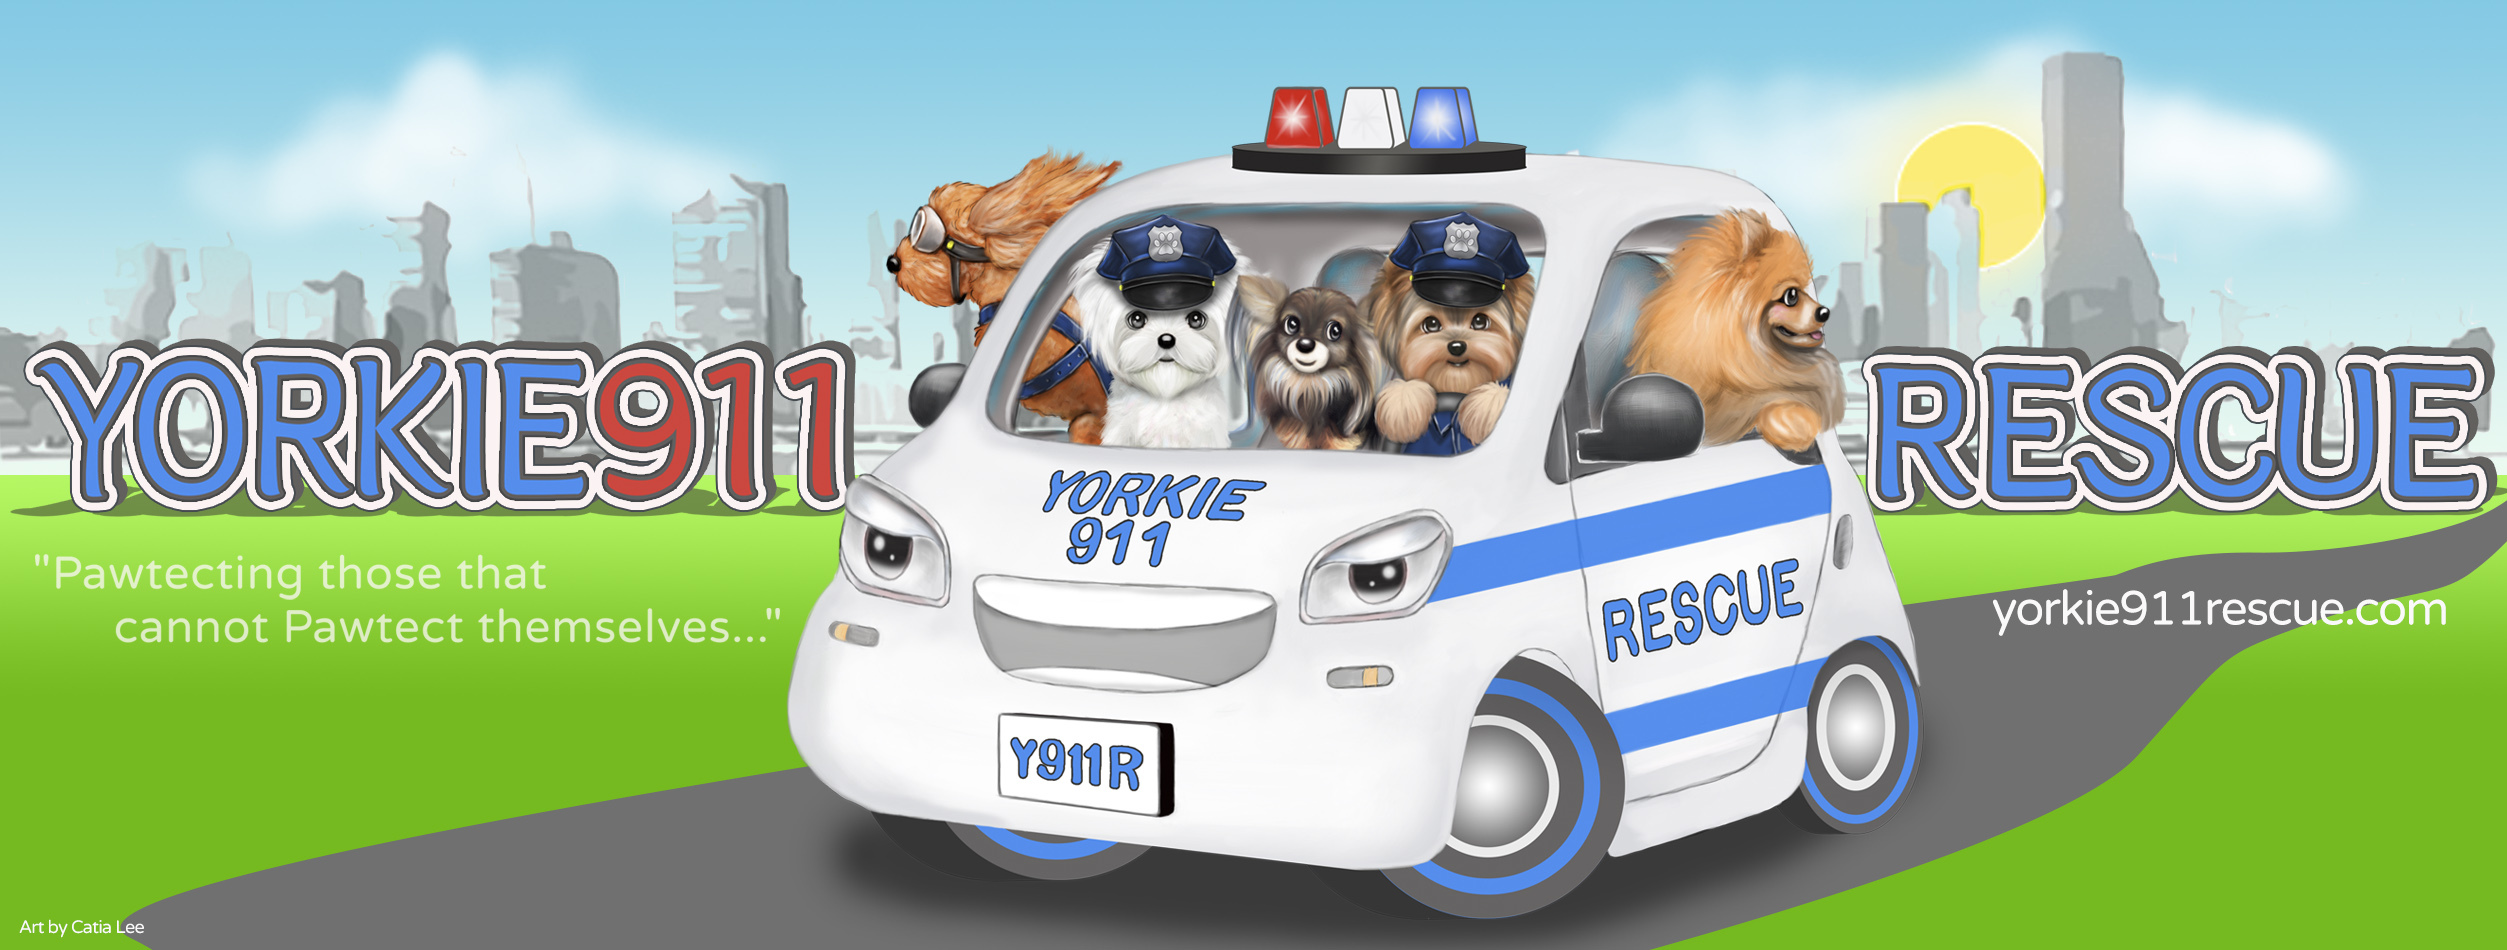 Pets For Adoption At Yorkie911 Rescue Inc In Deer Park Ny